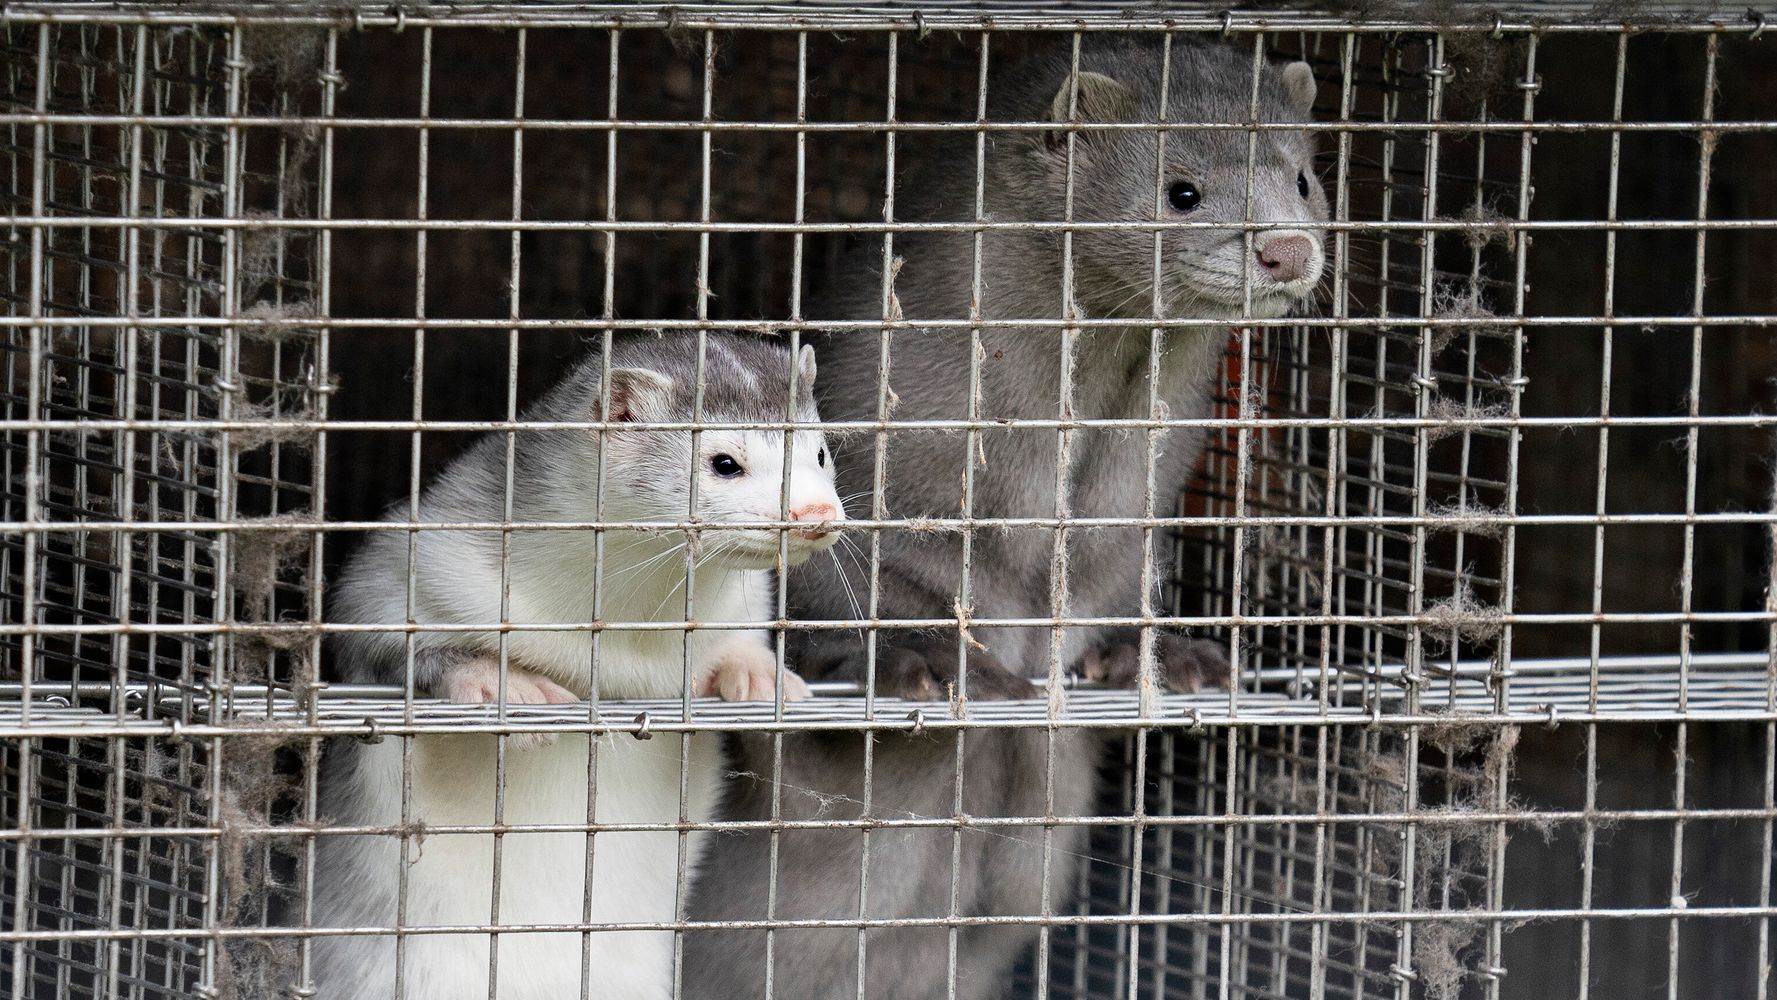 Denmark Plans To Kill All Of Its Minks On Fur Farms Over COVID-19 Fears